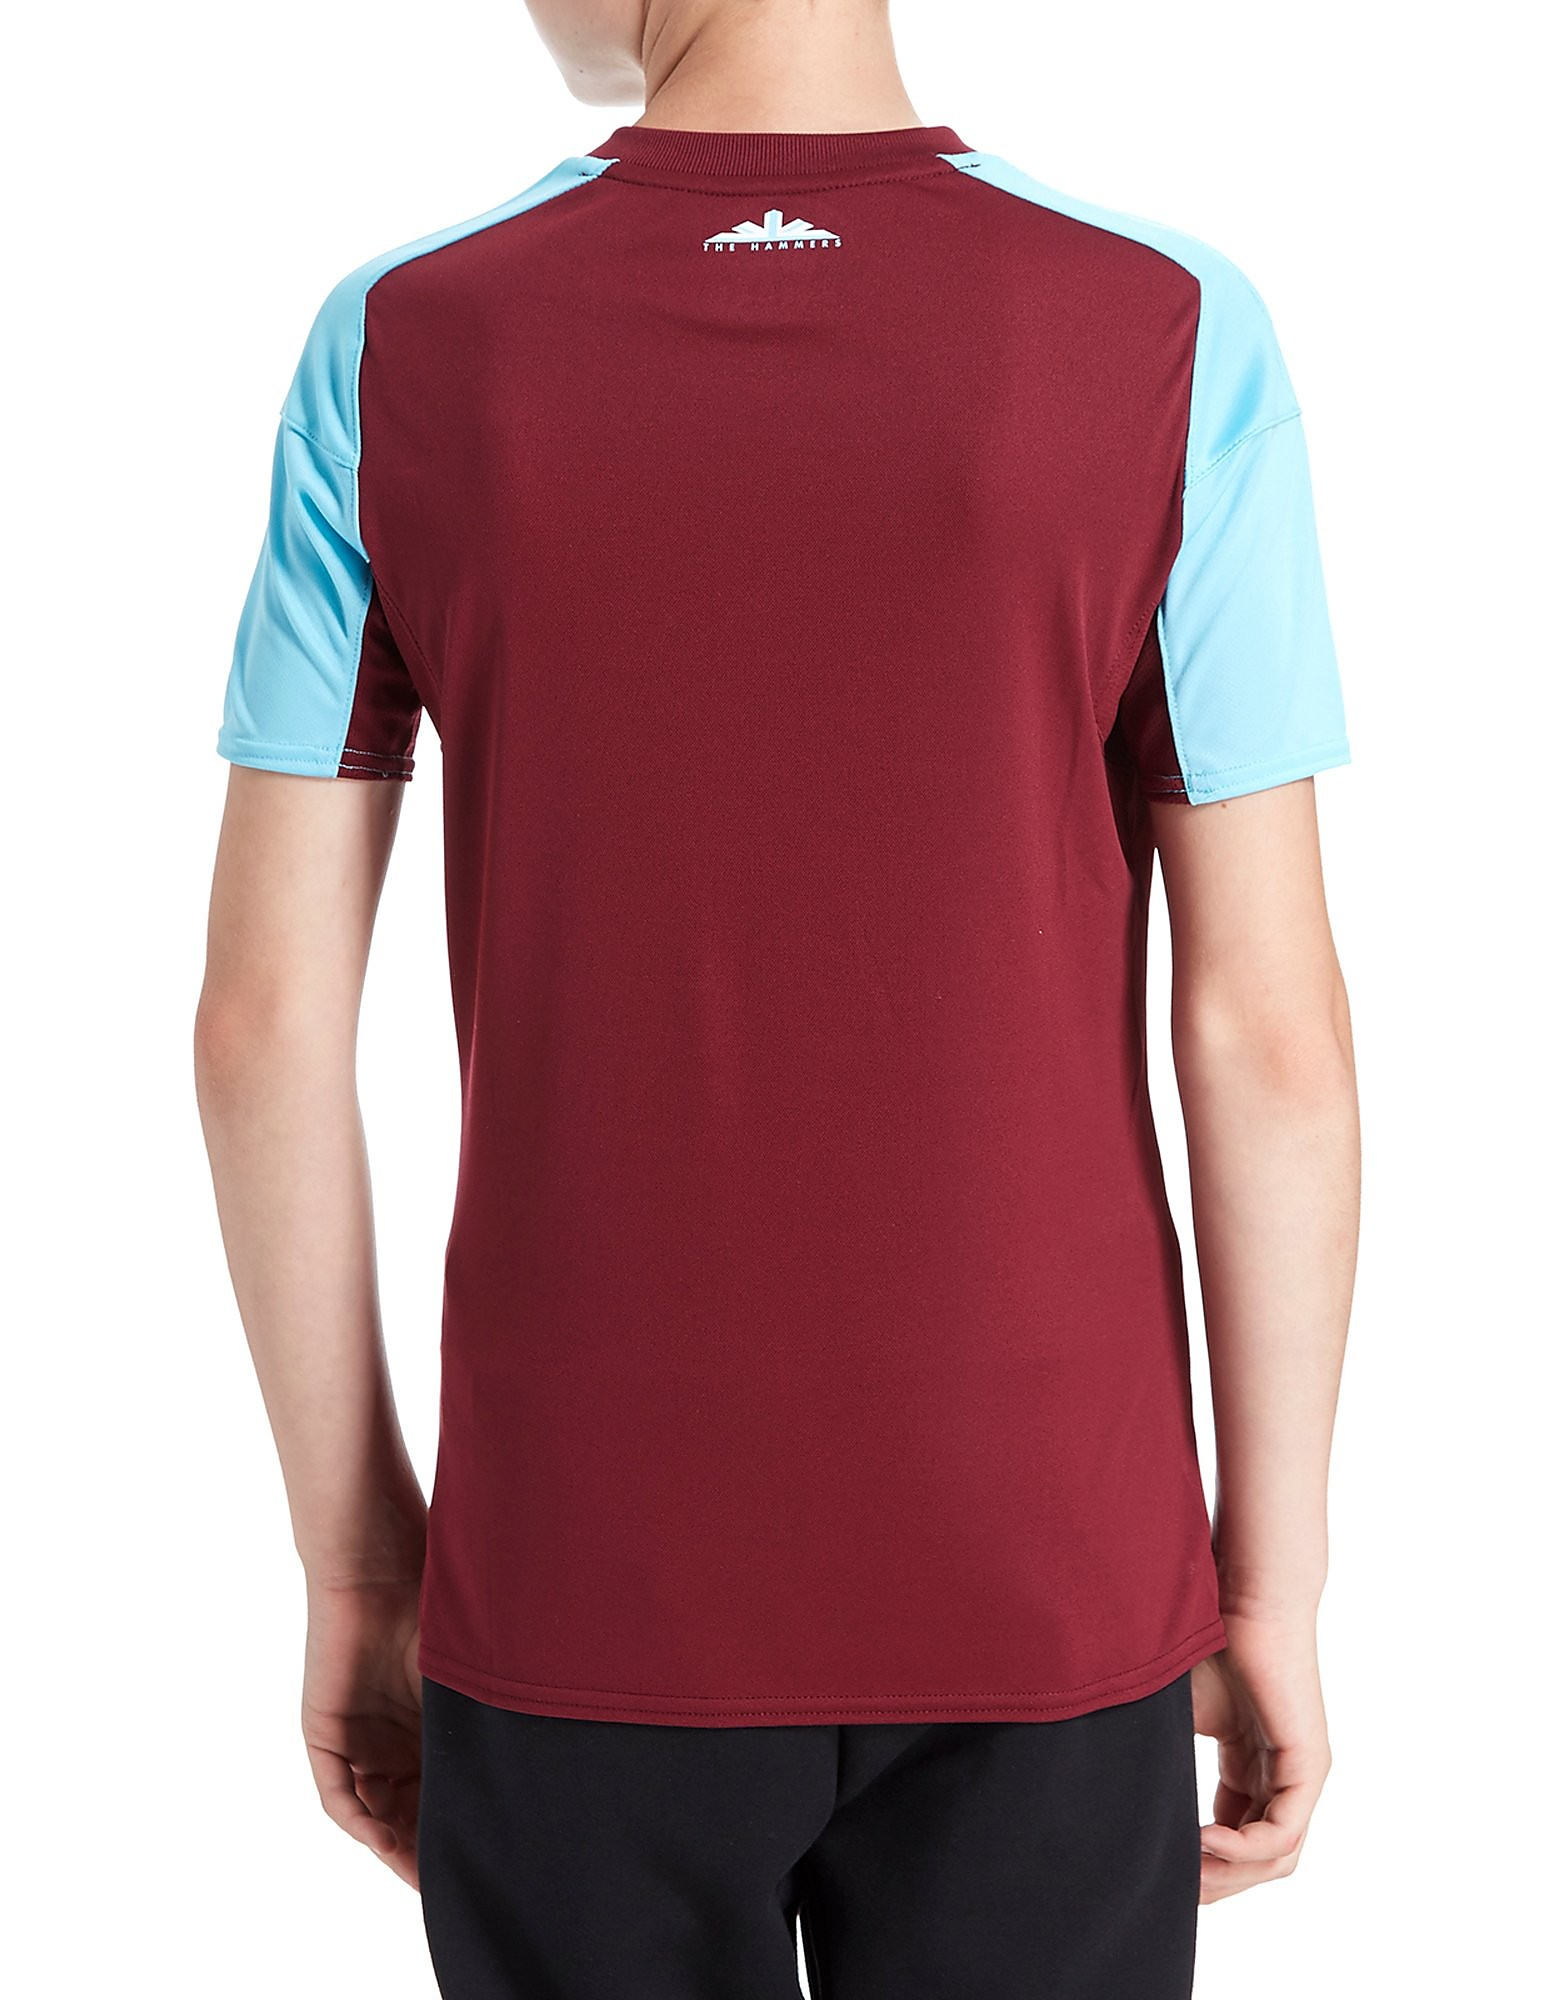 Umbro West Ham United 2017/18 Home Shirt Junior